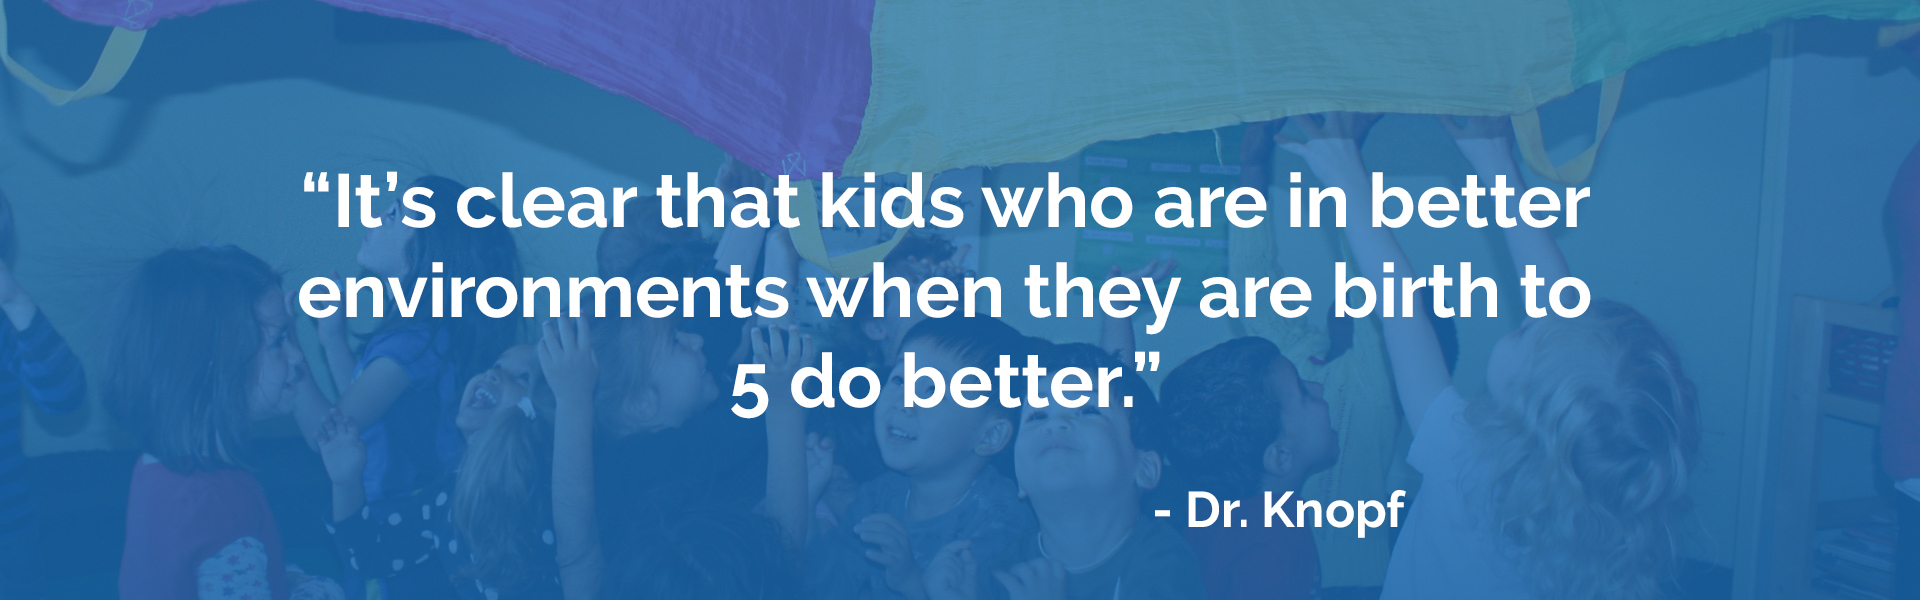 It's clear that kids who are in better environments when they are birth to 5 do better, said Dr. Knopf.